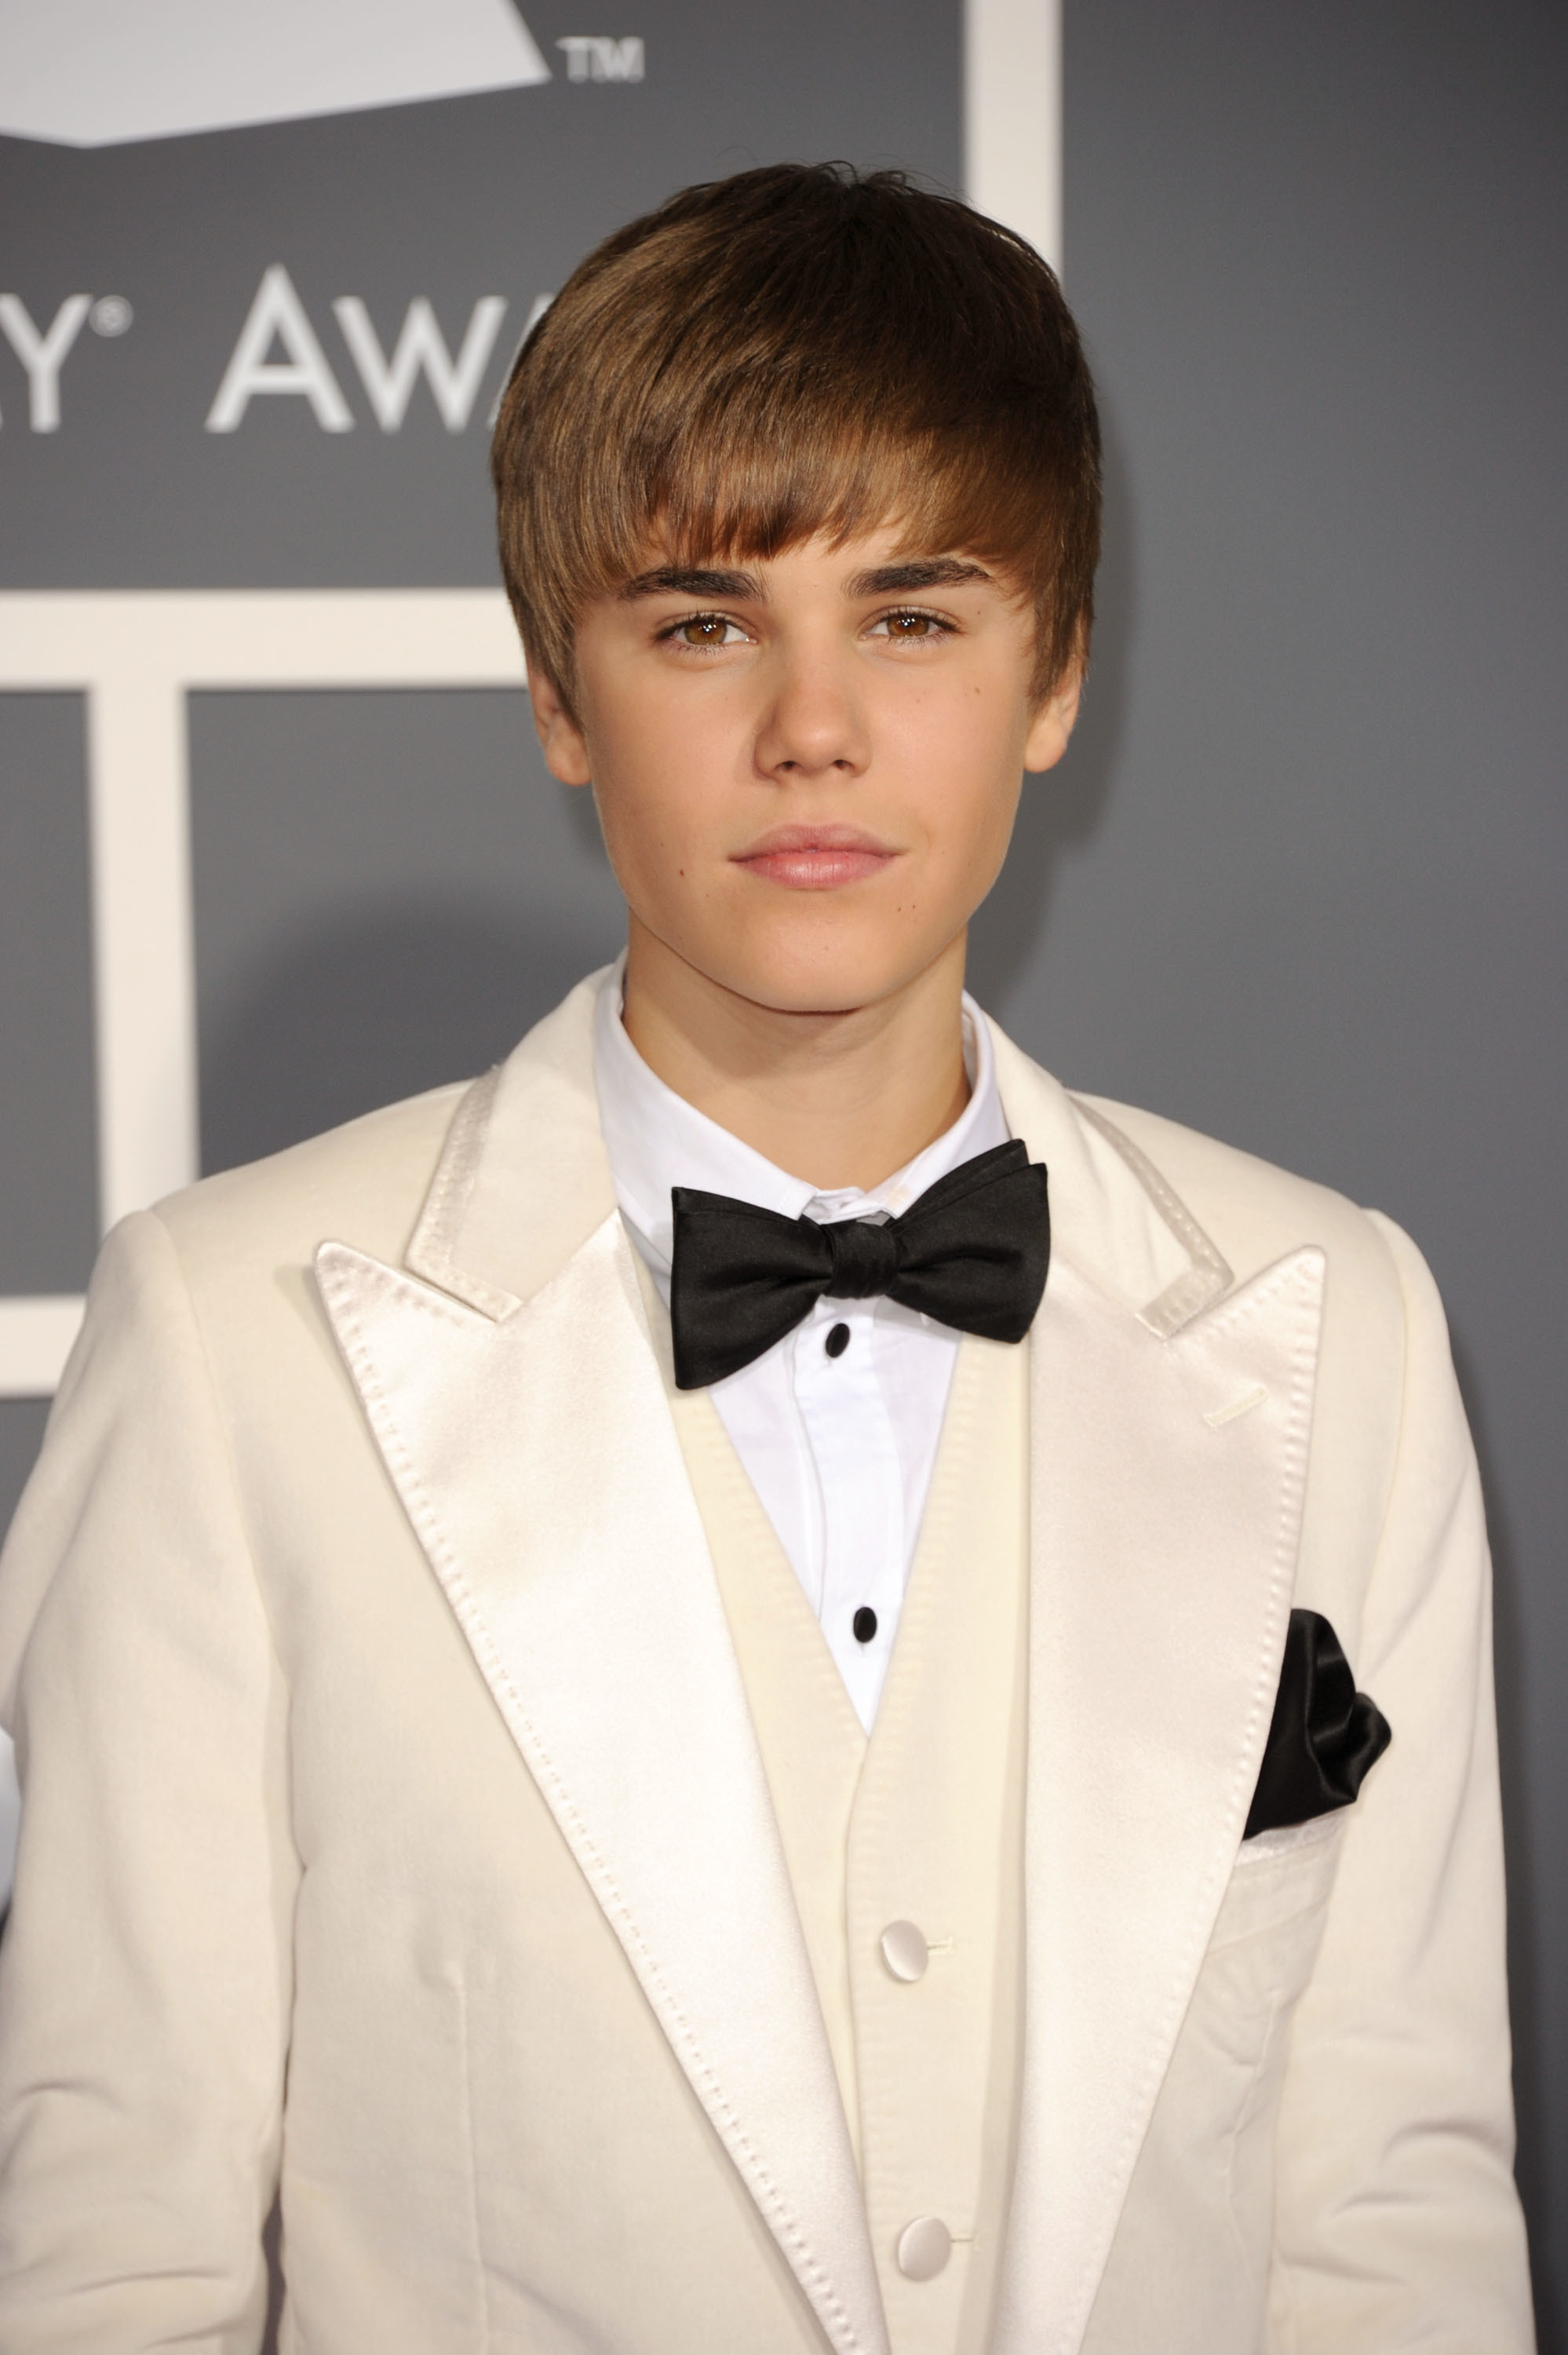 Justin Bieber arrives at The 53rd Annual GRAMMY Awards held in Los Angeles on Feb. 13, 2011.